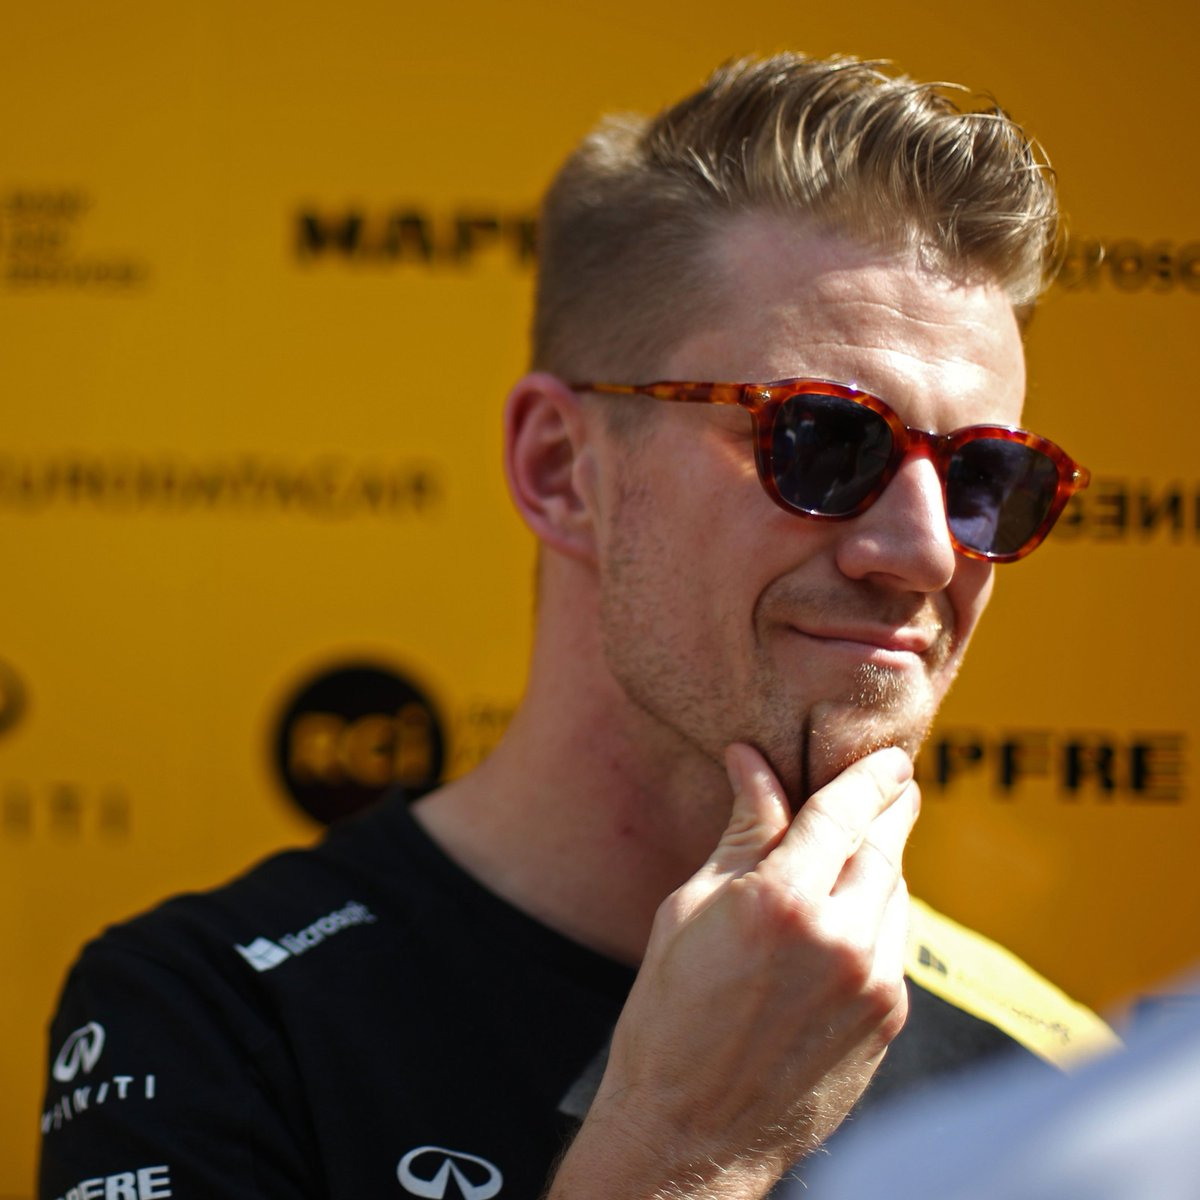 Next #BritishGP preview Q&A is up! Digging in - Q&A with @HulkHulkenberg 👉 http://bit.ly/2xz9No2   #RSspirit